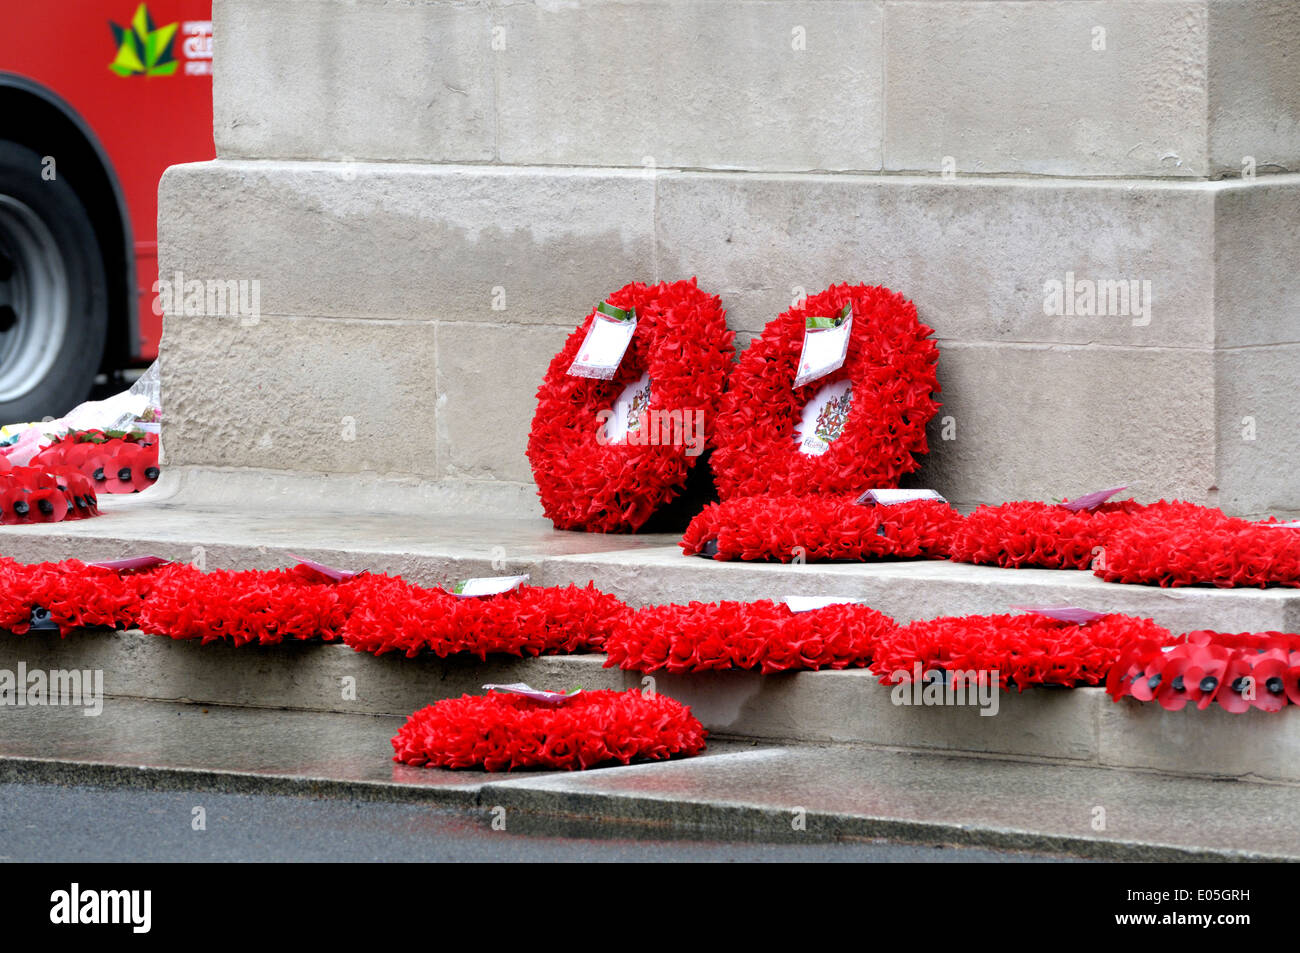 London, England, UK. Wreaths laid at the base of the Cenotaph in Whitehall - after Anzac Day 2014 - Stock Image